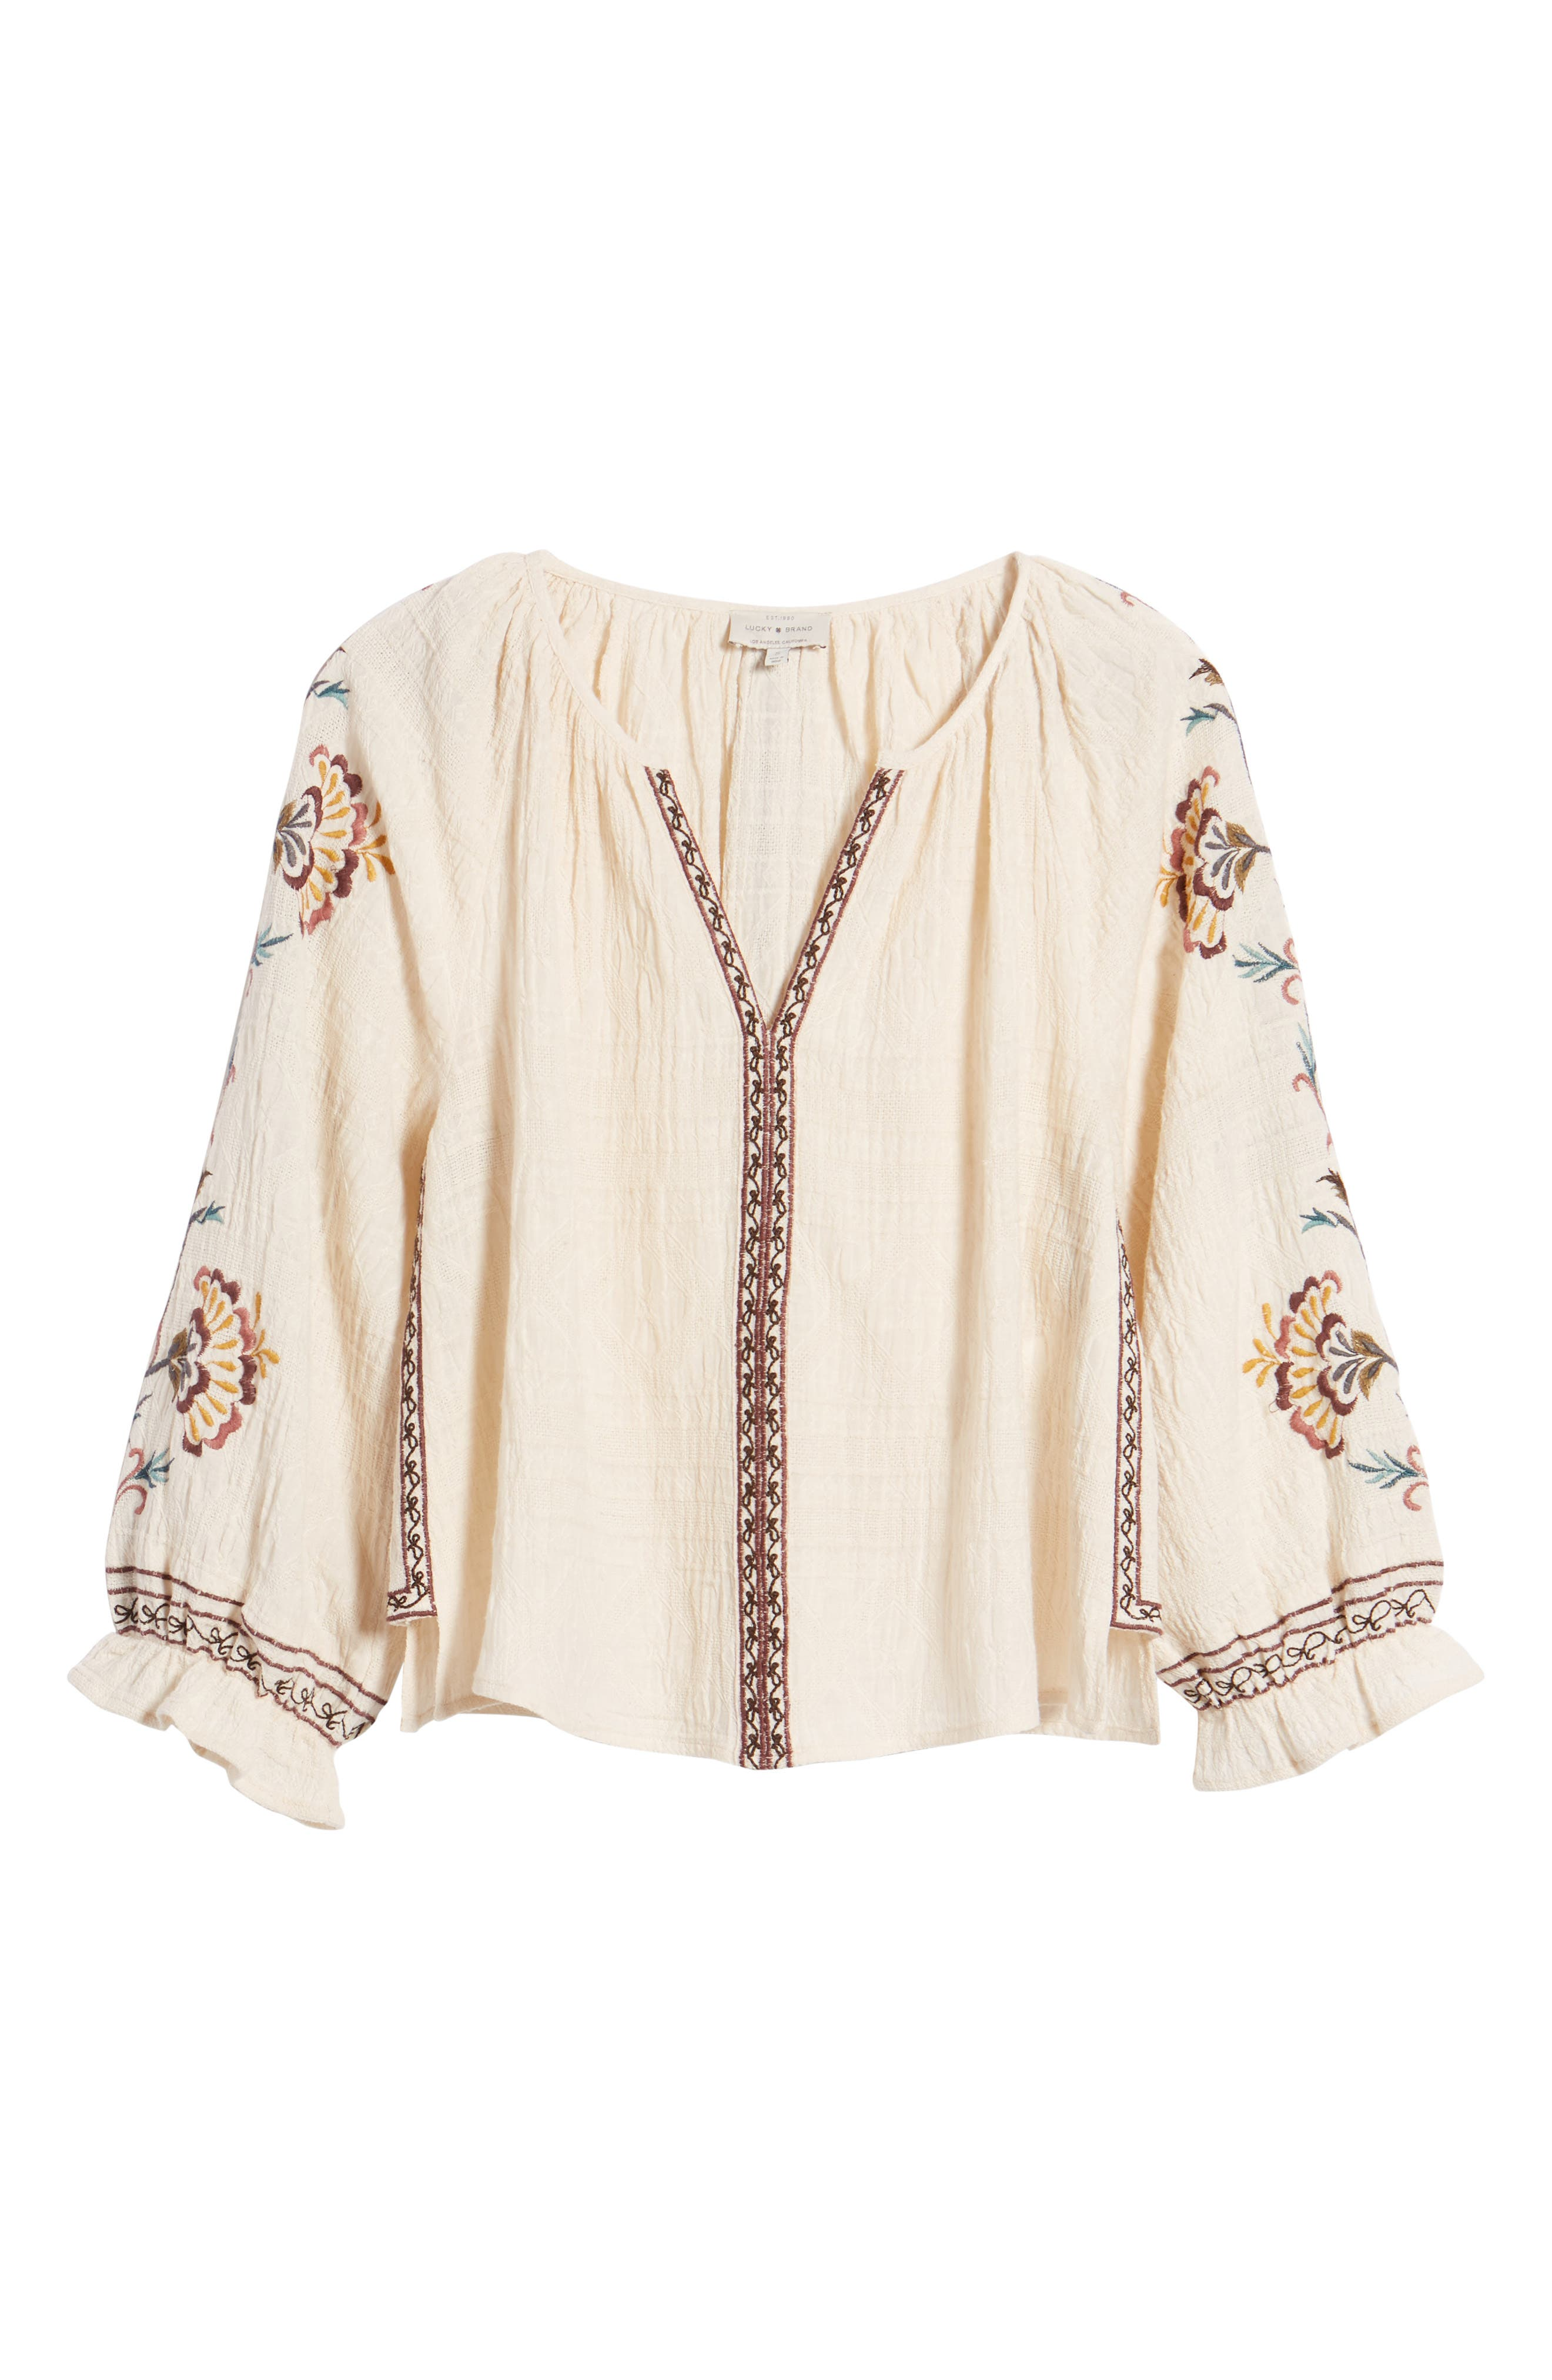 Embroidered Peasant Blouse,                             Alternate thumbnail 7, color,                             900